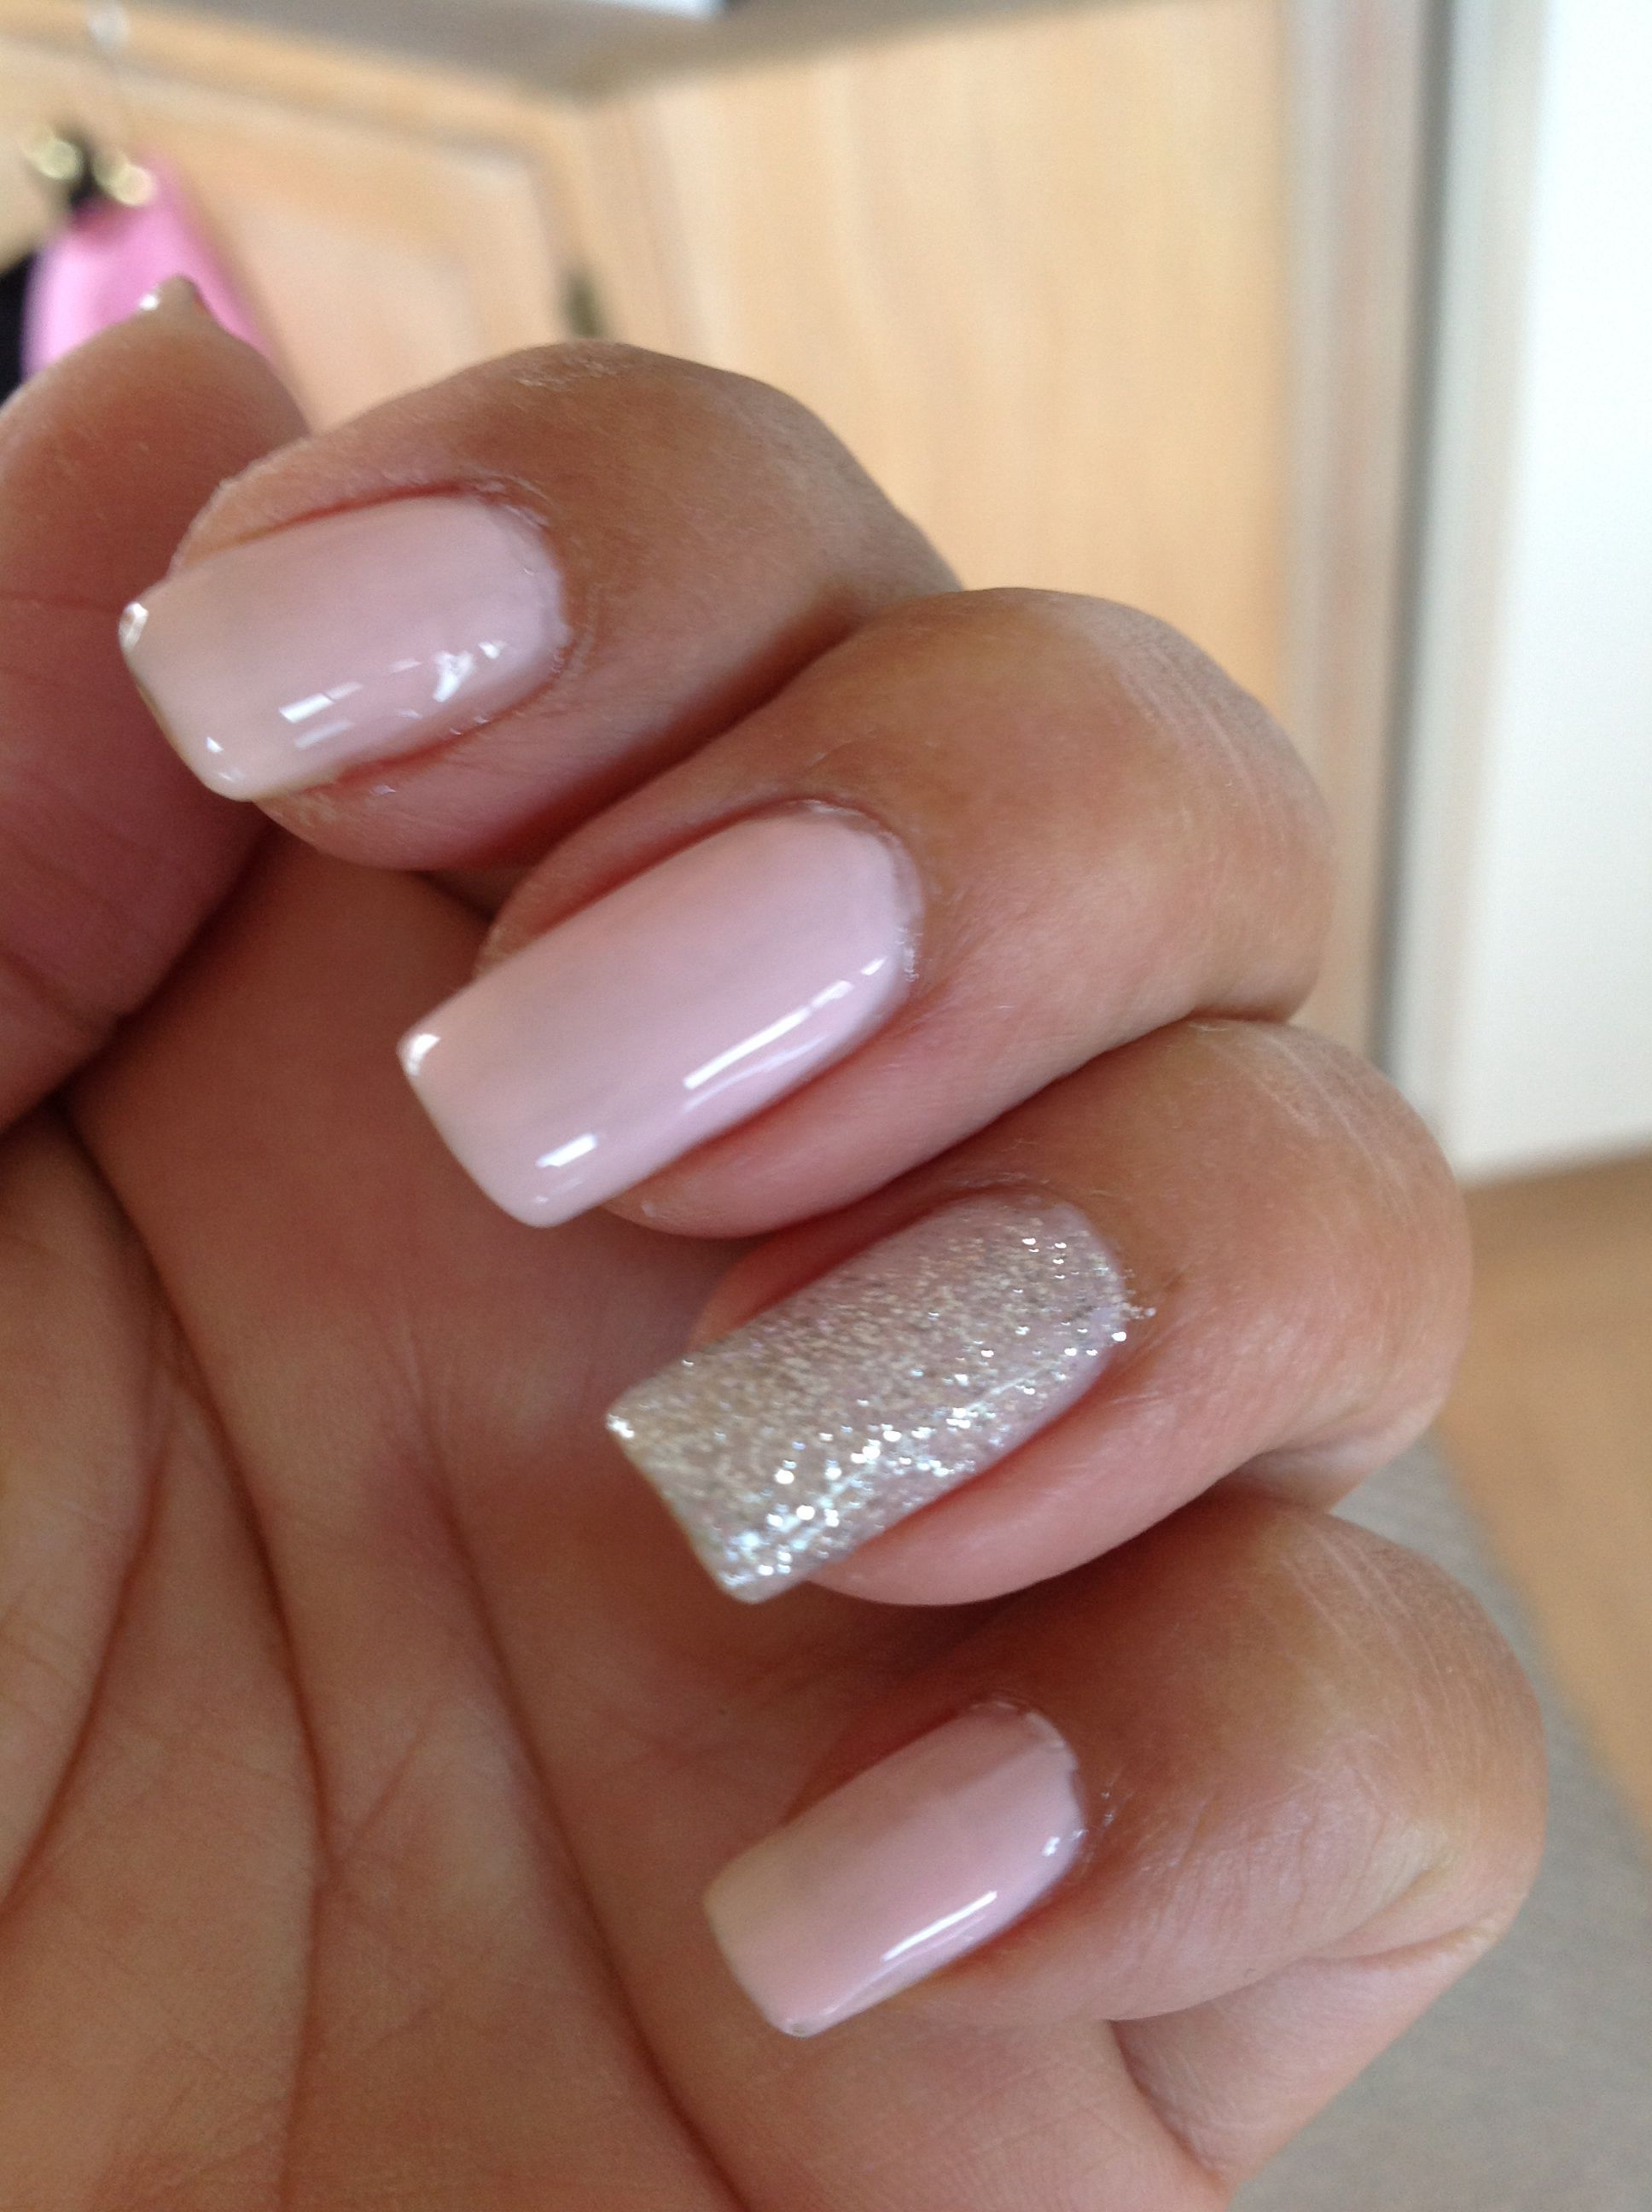 Baby Pink With One Glitter Nail Nails Baby Pink Nails Baby Pink Acrylic Nails Glitter Infill Miss Lucy Baby Pink Nails Pink Nail Designs Pink Glitter Nails